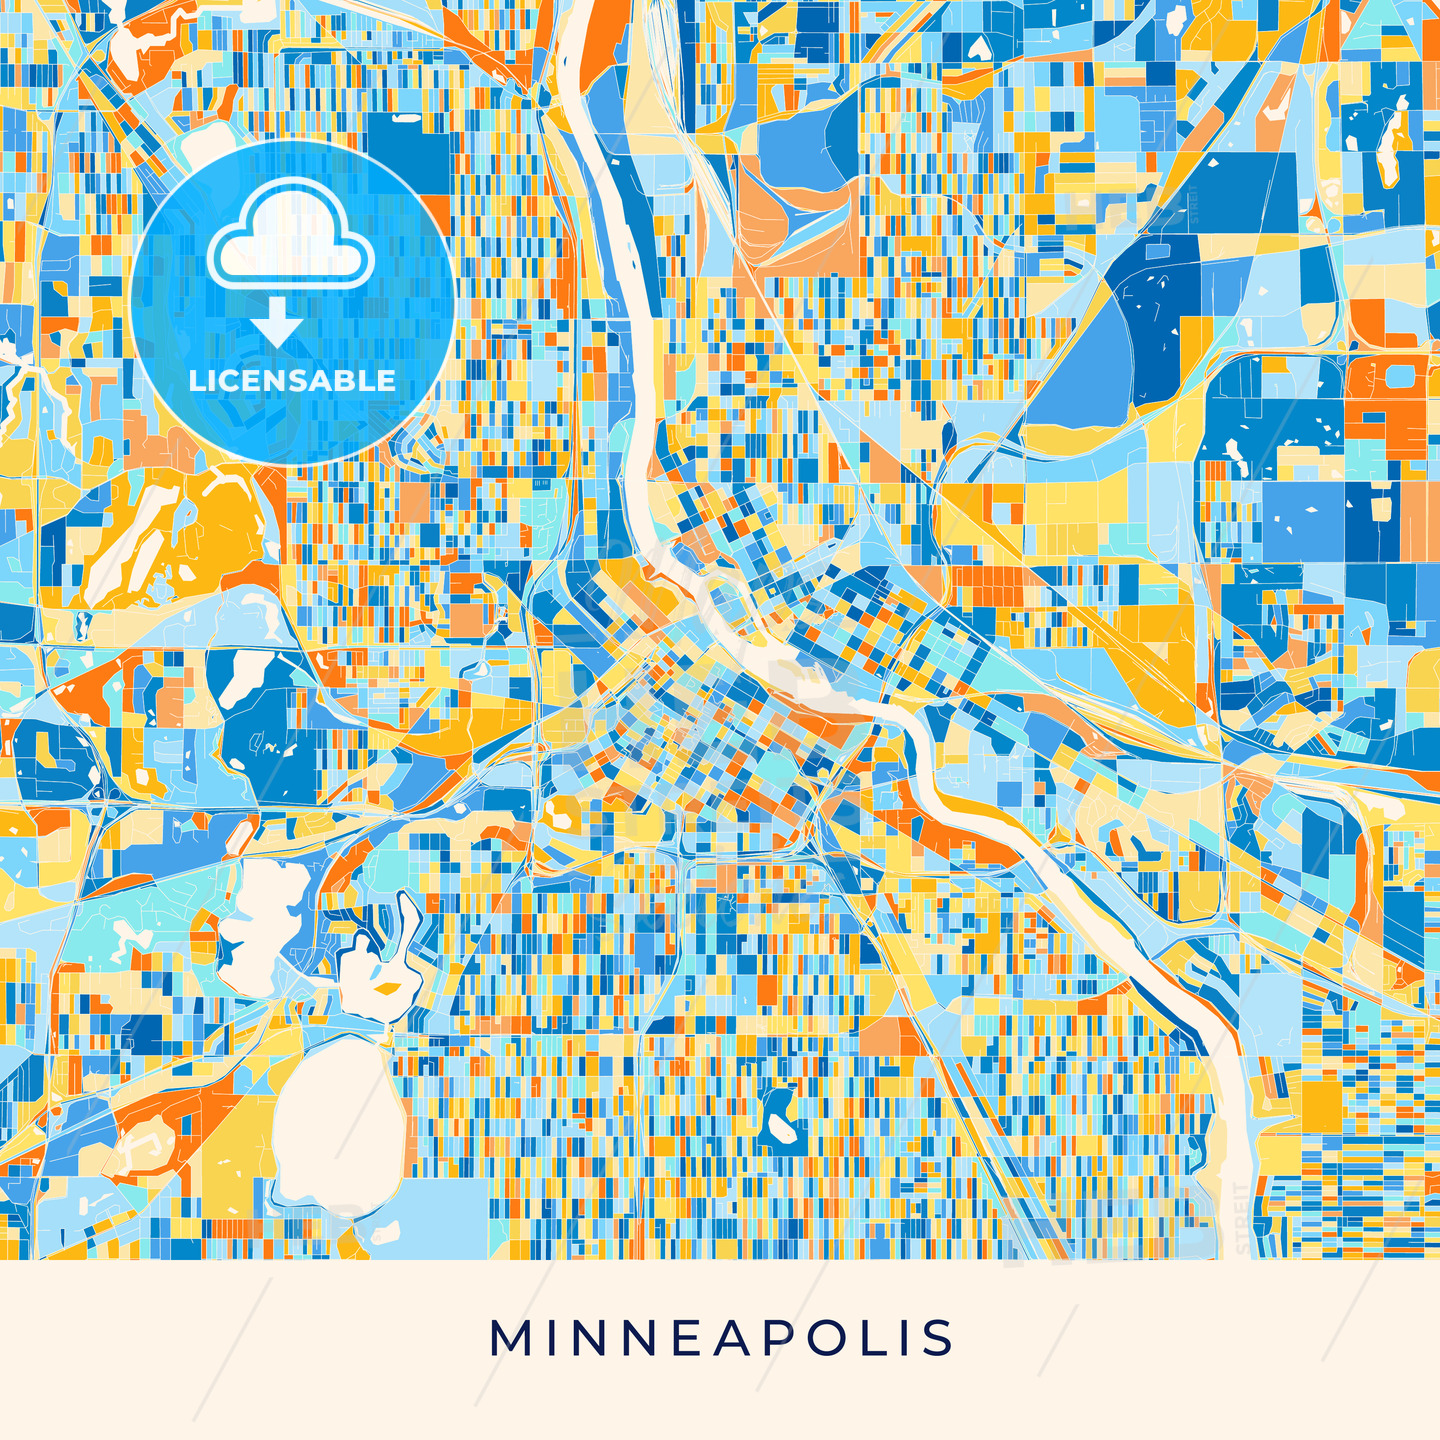 Minneapolis colorful map poster template